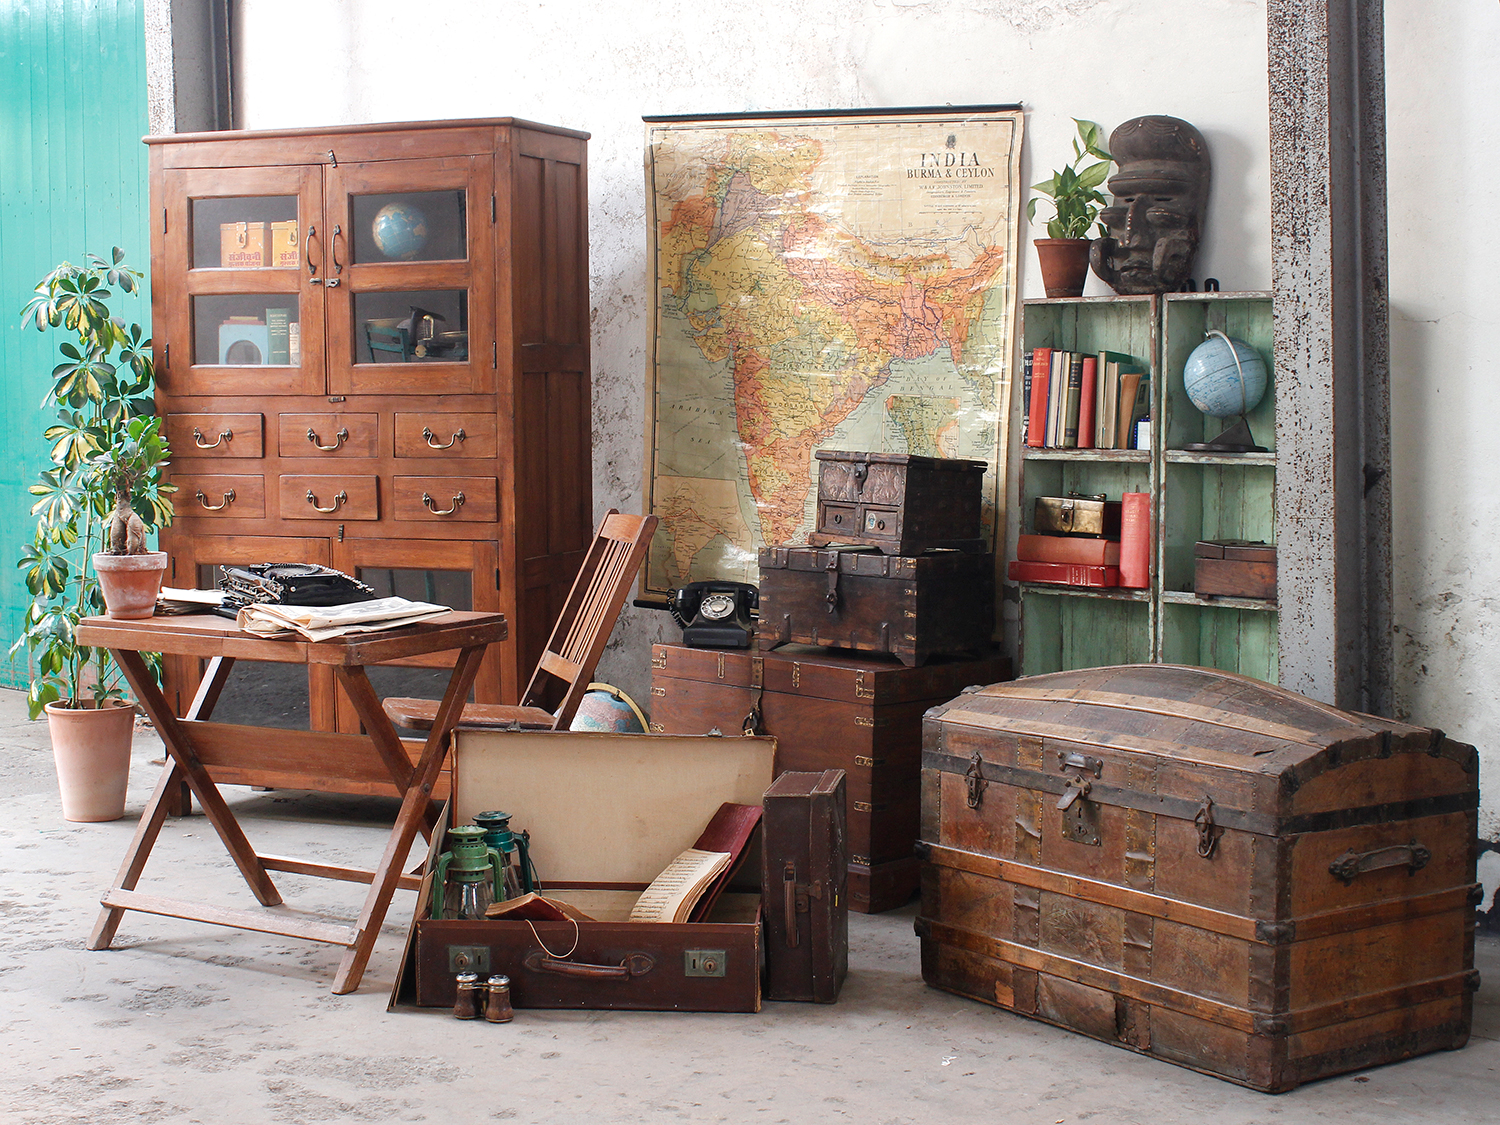 georgia chair company wooden office no wheels another starring role scaramanga vintage trunks in